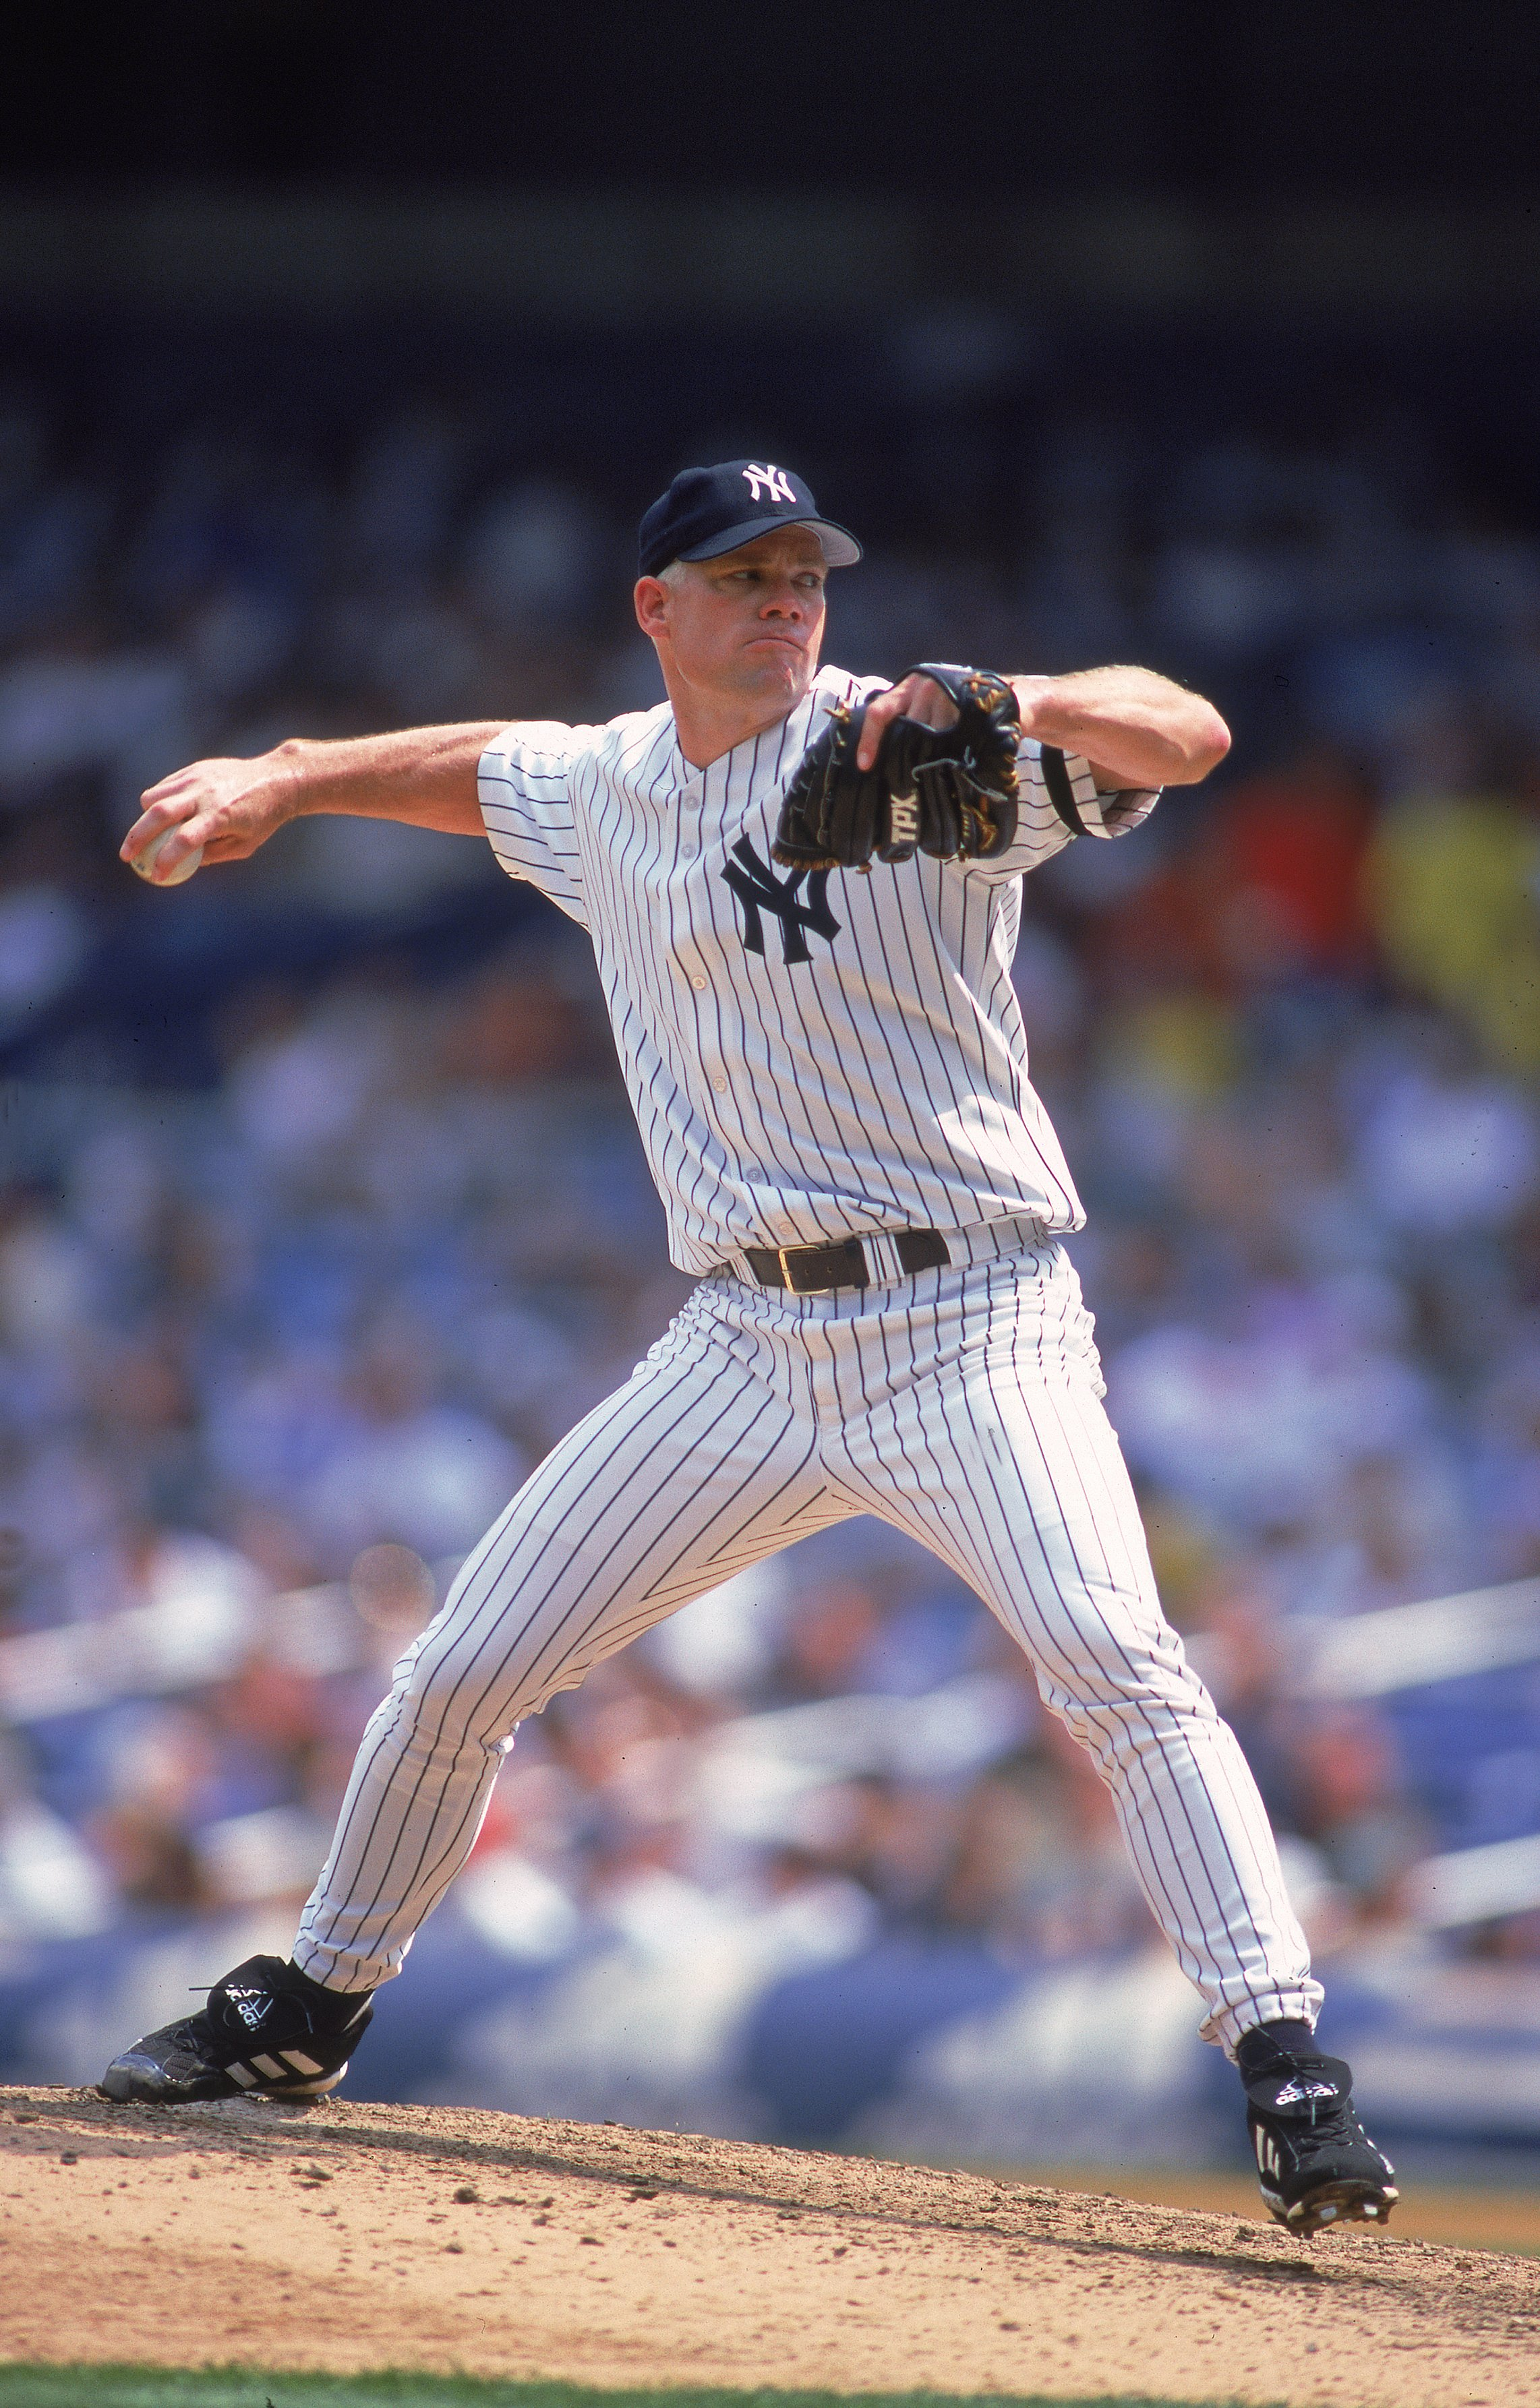 2 Aug 2000:  Pitcher Jason Grimsley #38 of the New York Yankees in action pitching during the game against the Kansas City Royals at Yankee Stadium in the Bronx, New York. The Royals defeated the Yankees 4-1.Mandatory Credit: Al Bello  /Allsport